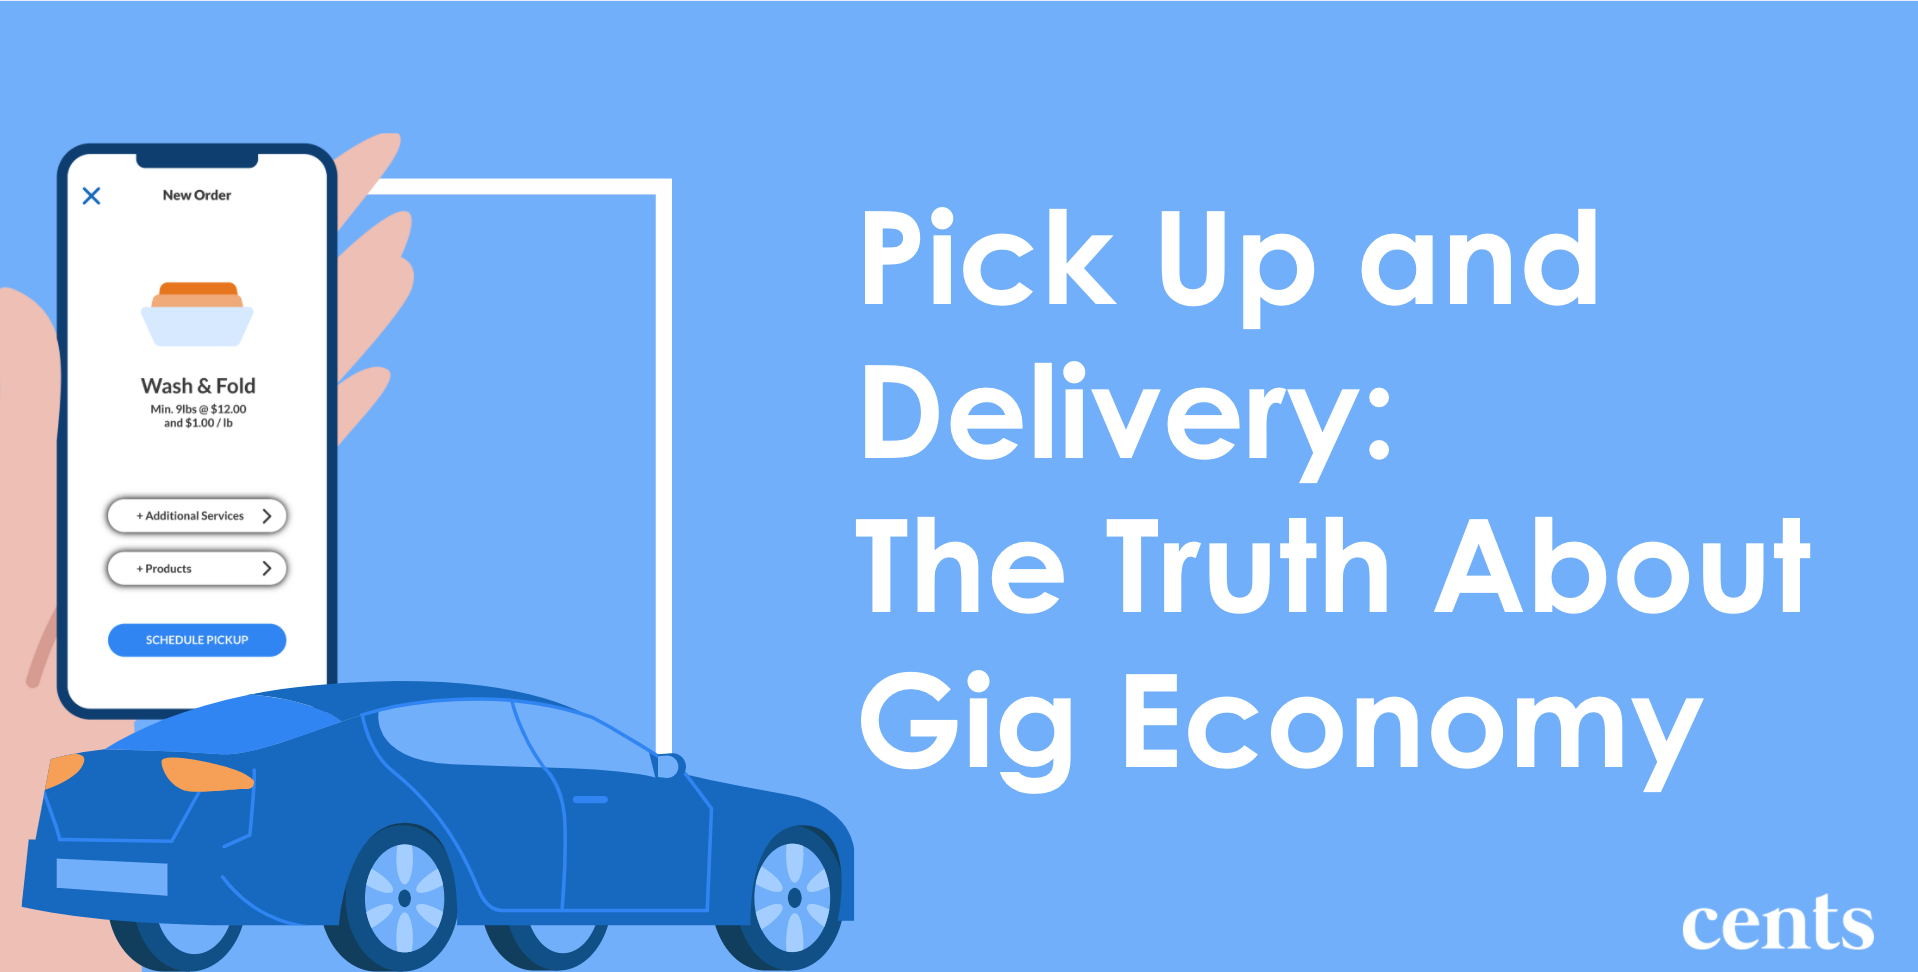 Pick Up and Delivery - The Truth About The Gig Economy